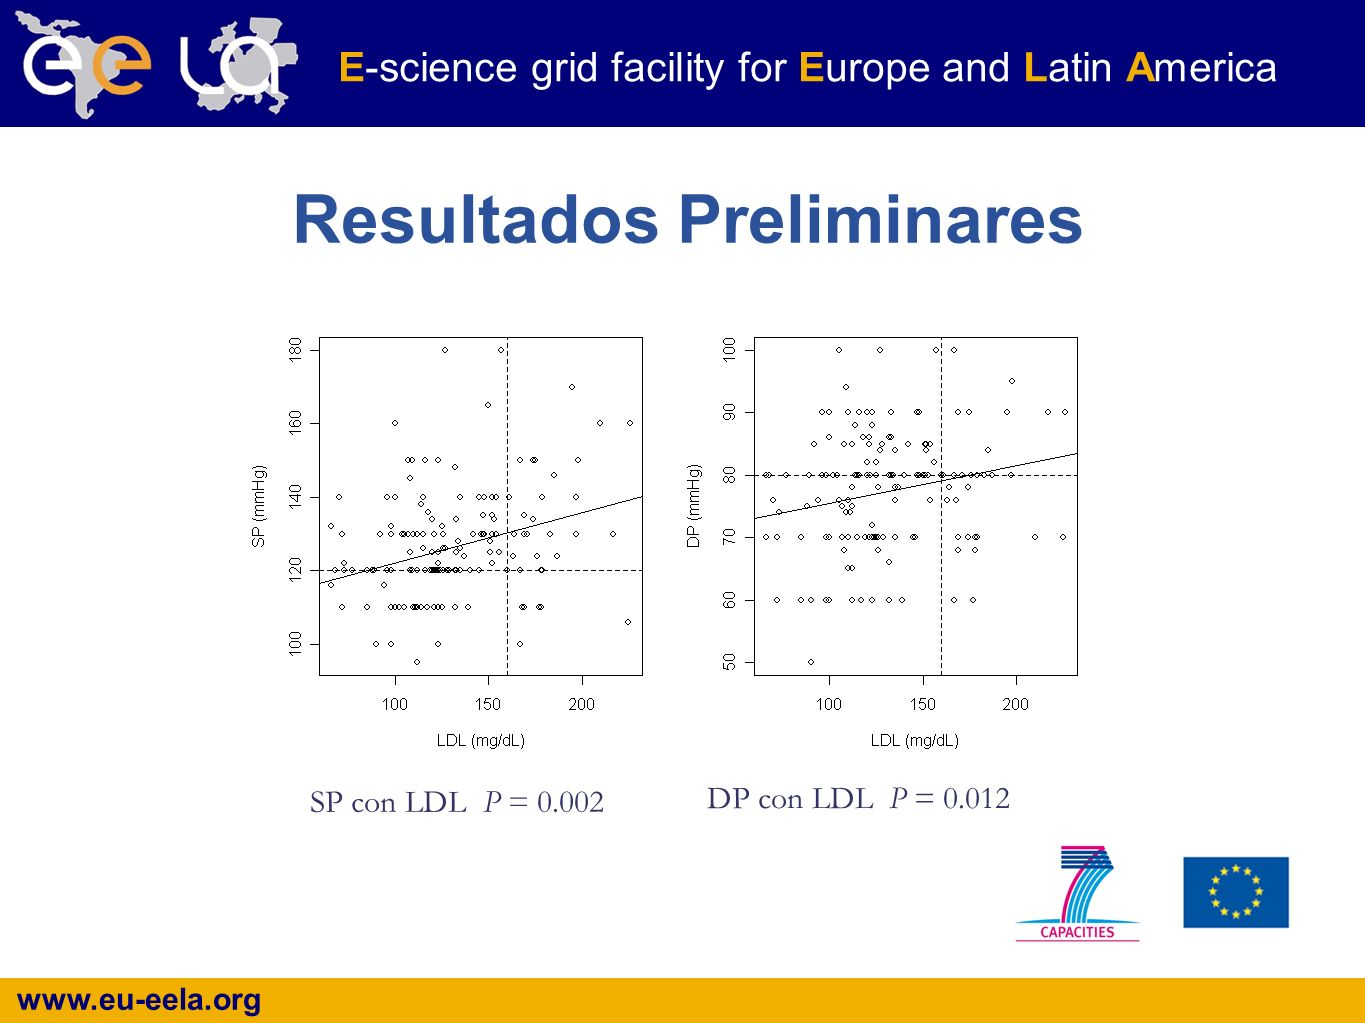 www.eu-eela.org E-science grid facility for Europe and Latin America Resultados Preliminares SP con LDL P = 0.002 DP con LDL P = 0.012